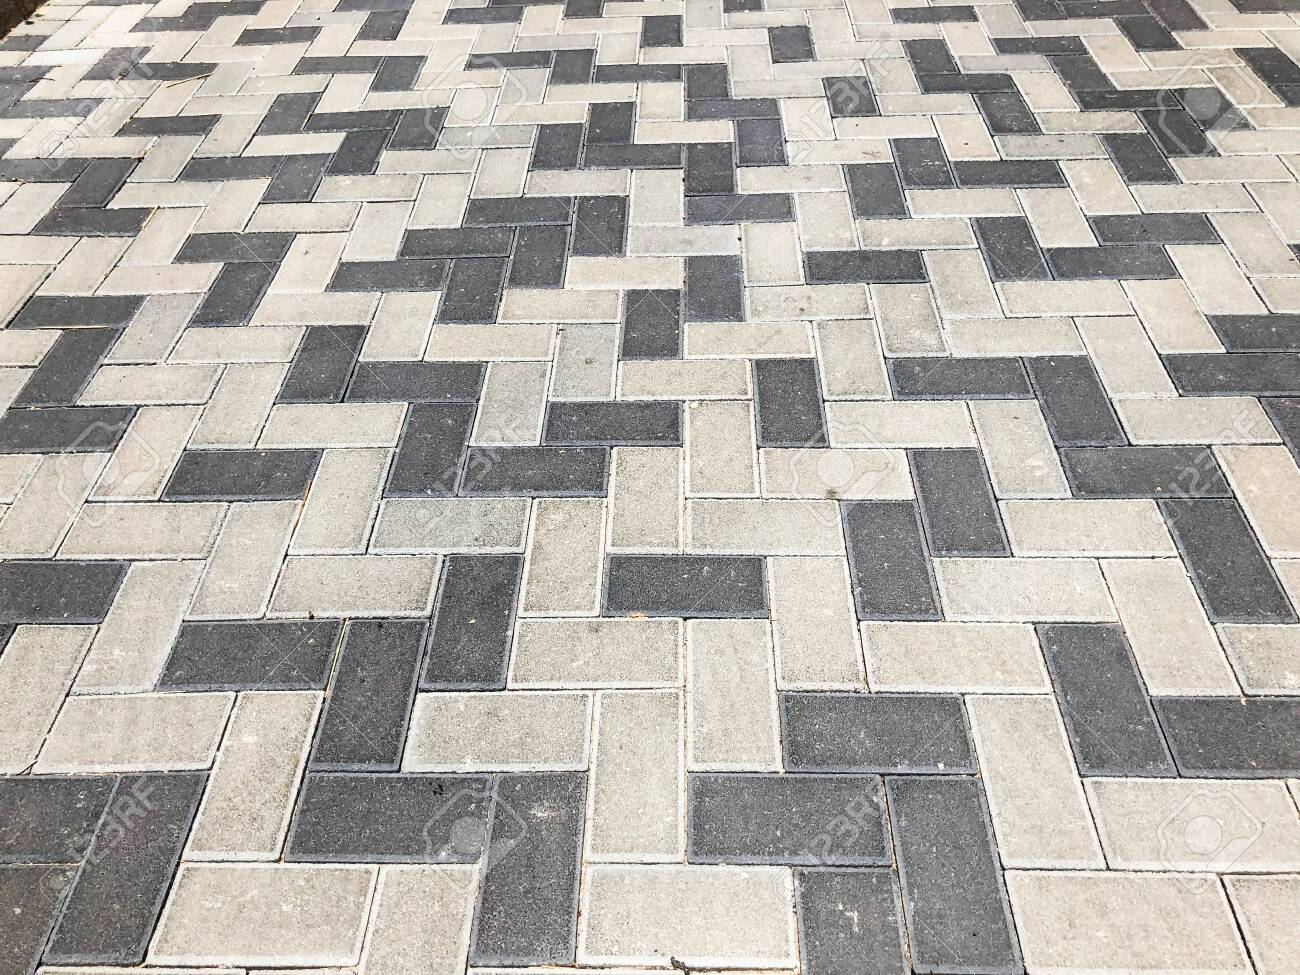 Gray Tiles Granite Floor Background Pavement Tiles Outdoor Urban Stock Photo Picture And Royalty Free Image Image 134395520